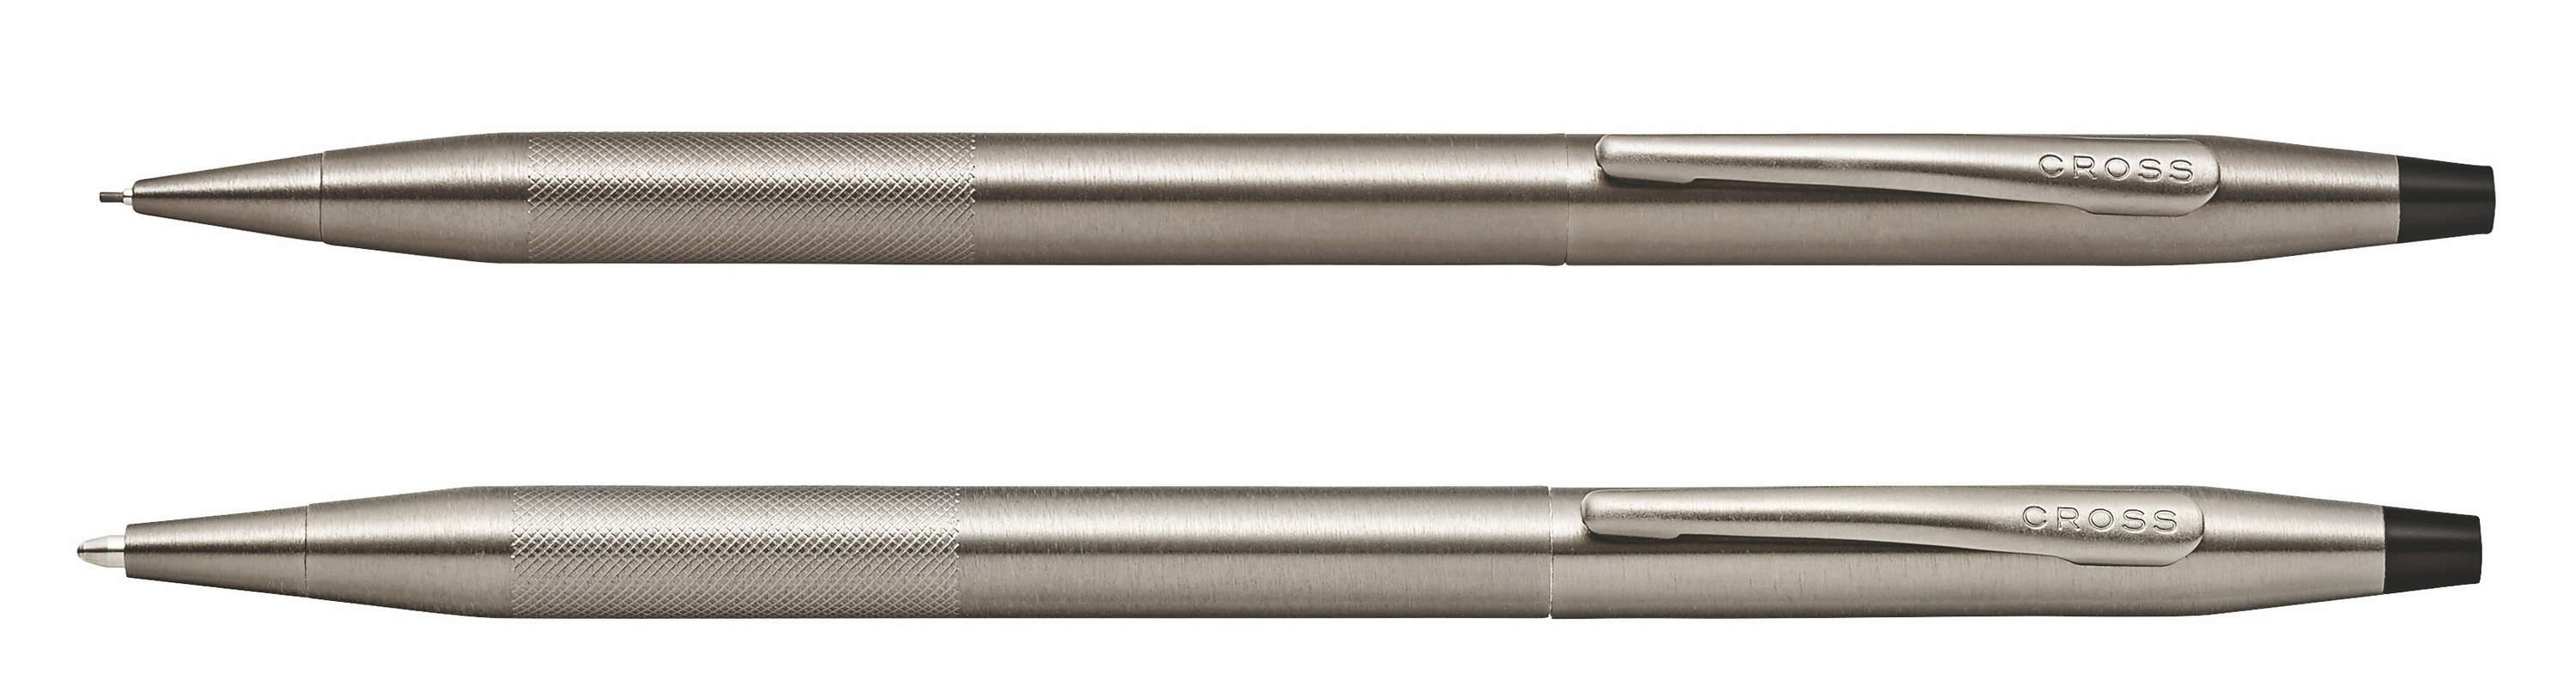 546442847-126 - Classic Century Titanium Gray PVD Ballpoint Pen/0.7mm Pencil Set with Micro-knurl Detail - thumbnail